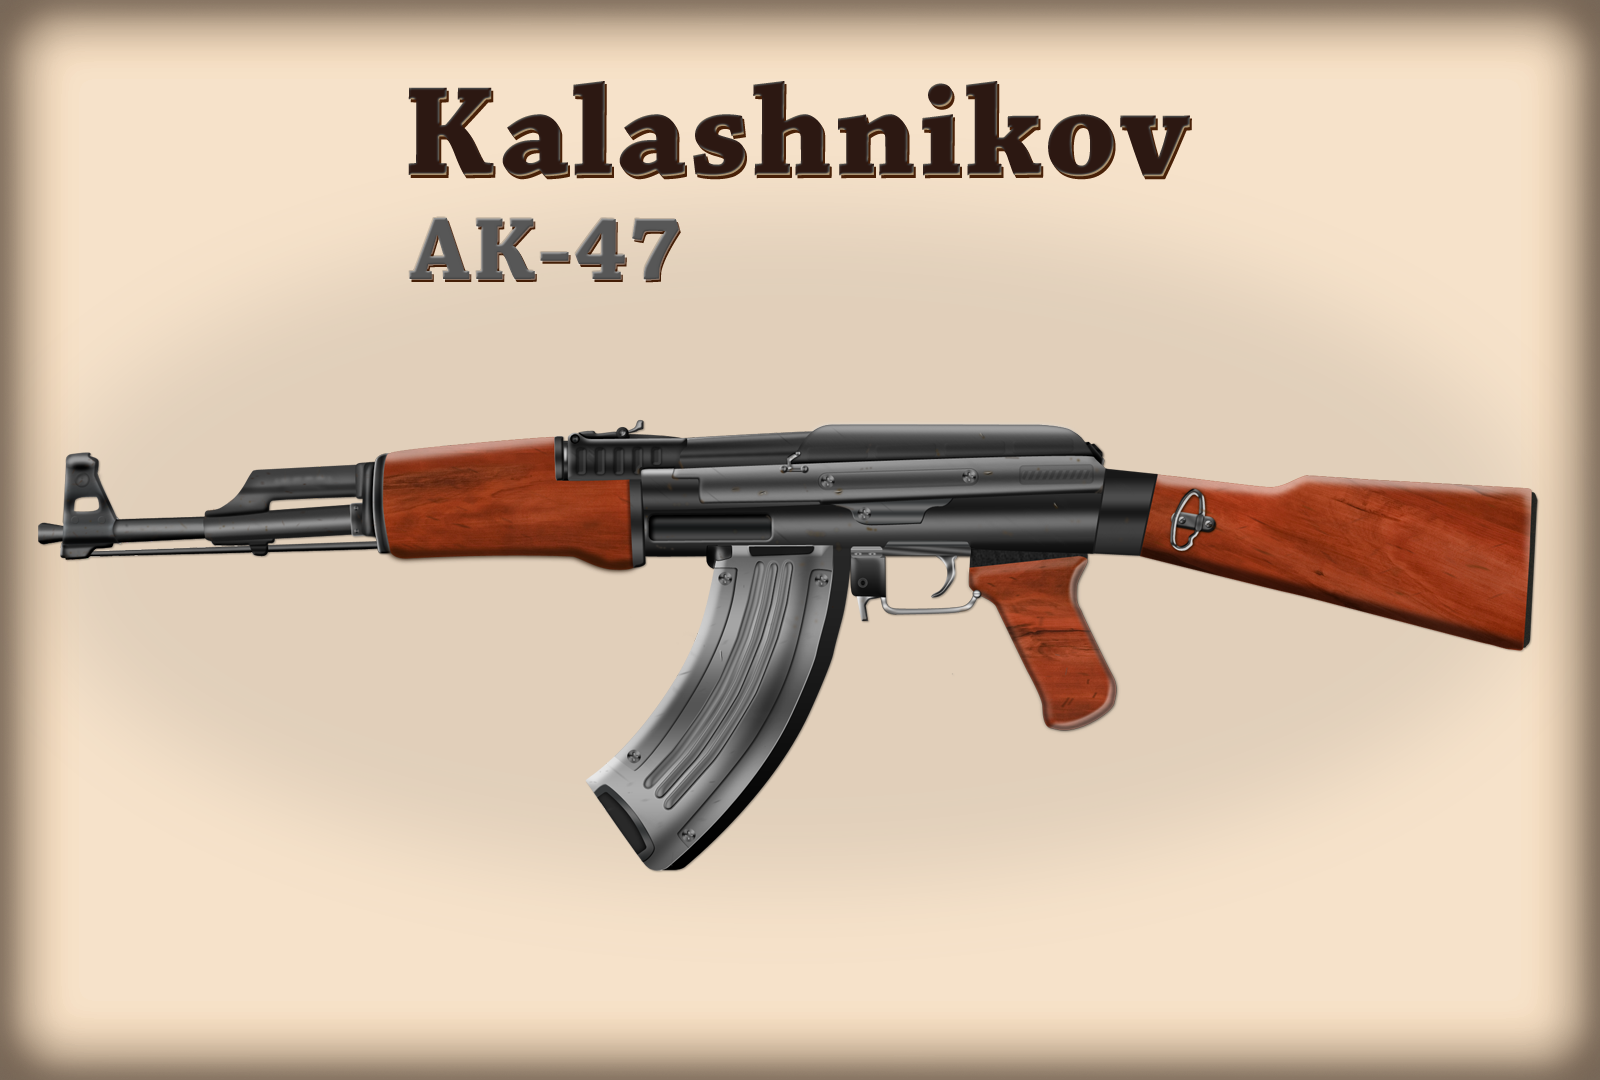 Why we should pay attention to the AK-47?